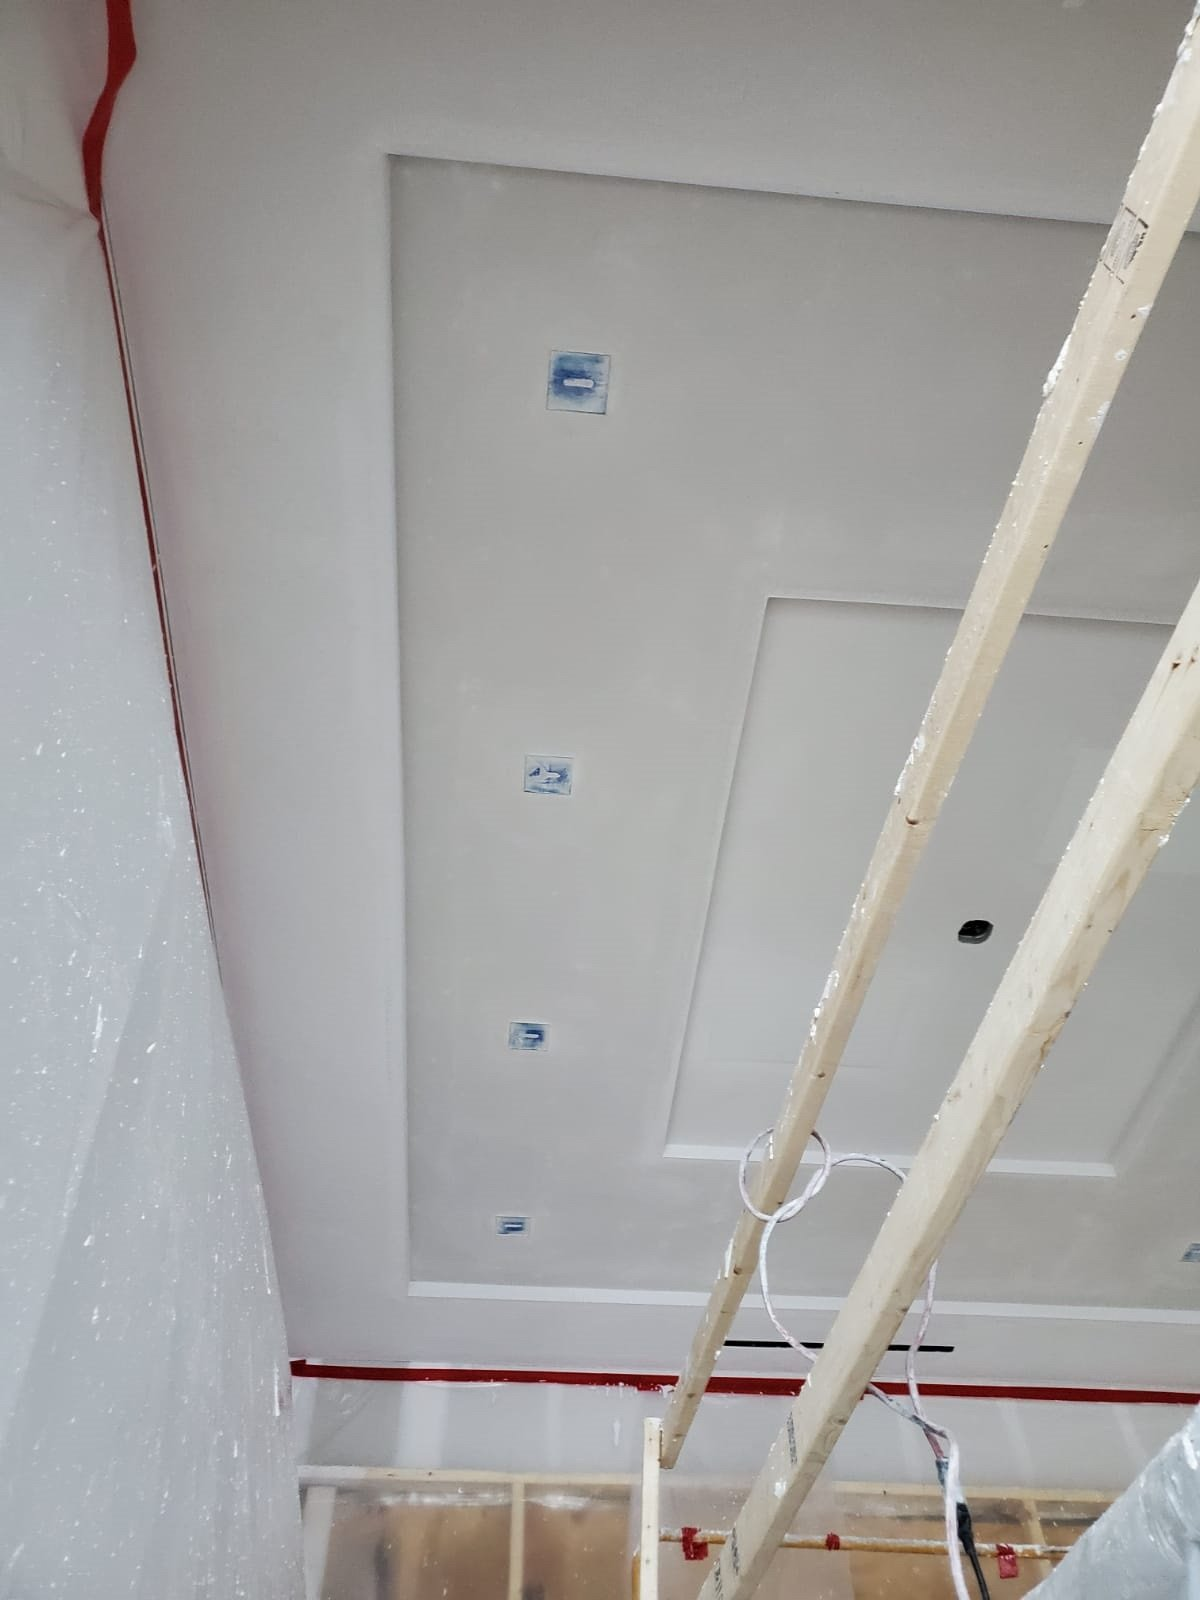 Bradleigh Applications Inc Acoustical Plaster using StarSilent at Lost Tree Village Private Residence